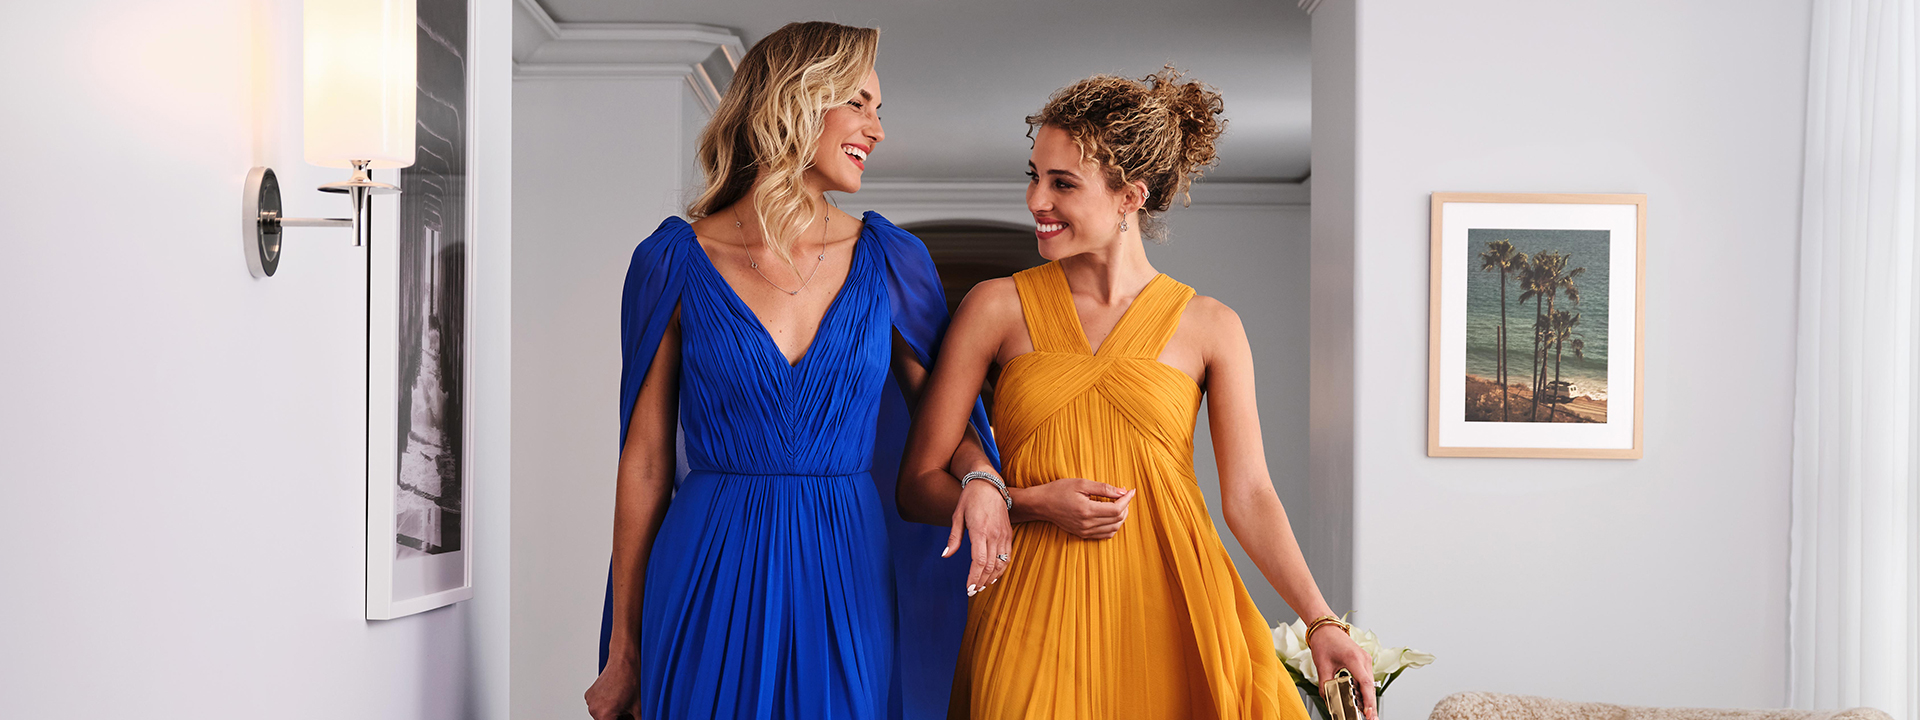 Two women fashionably dressed in the luxury suite